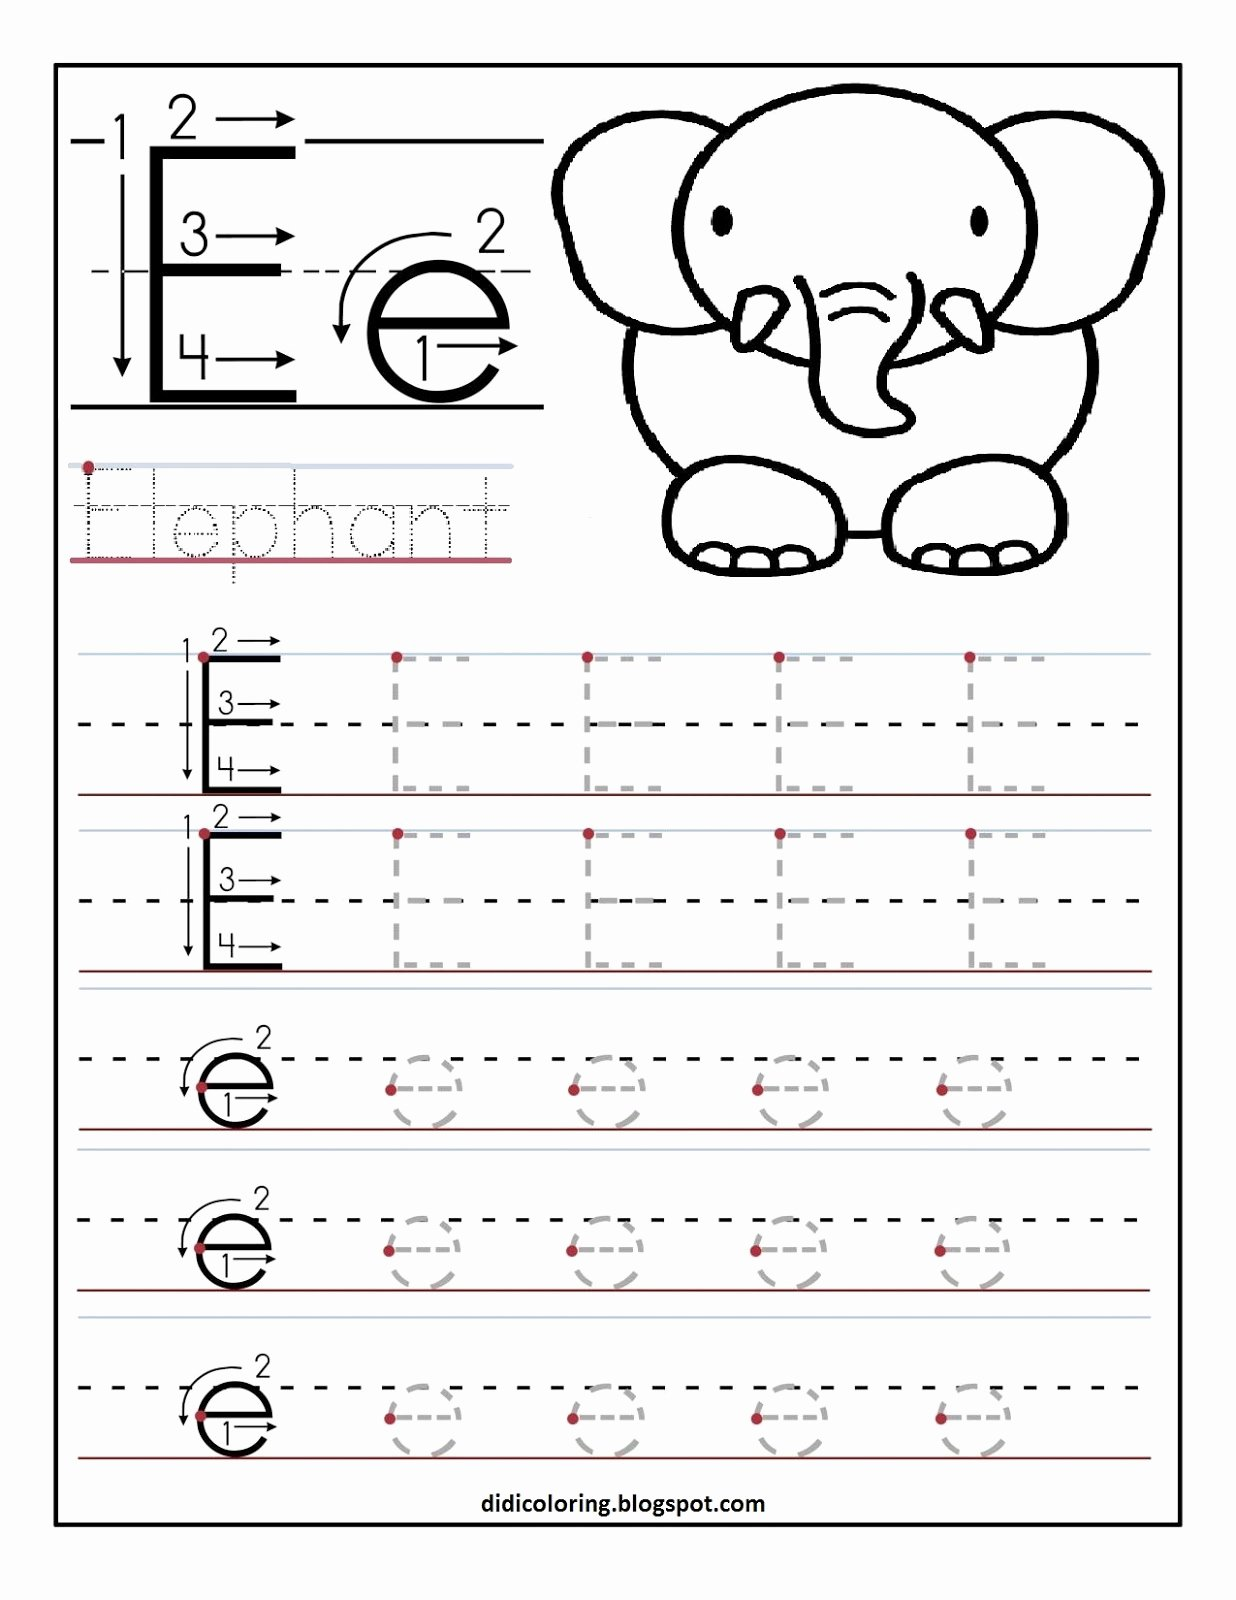 Learn to Write Worksheets for Preschoolers Inspirational Worksheets Learning Write Worksheets How Printable Letter